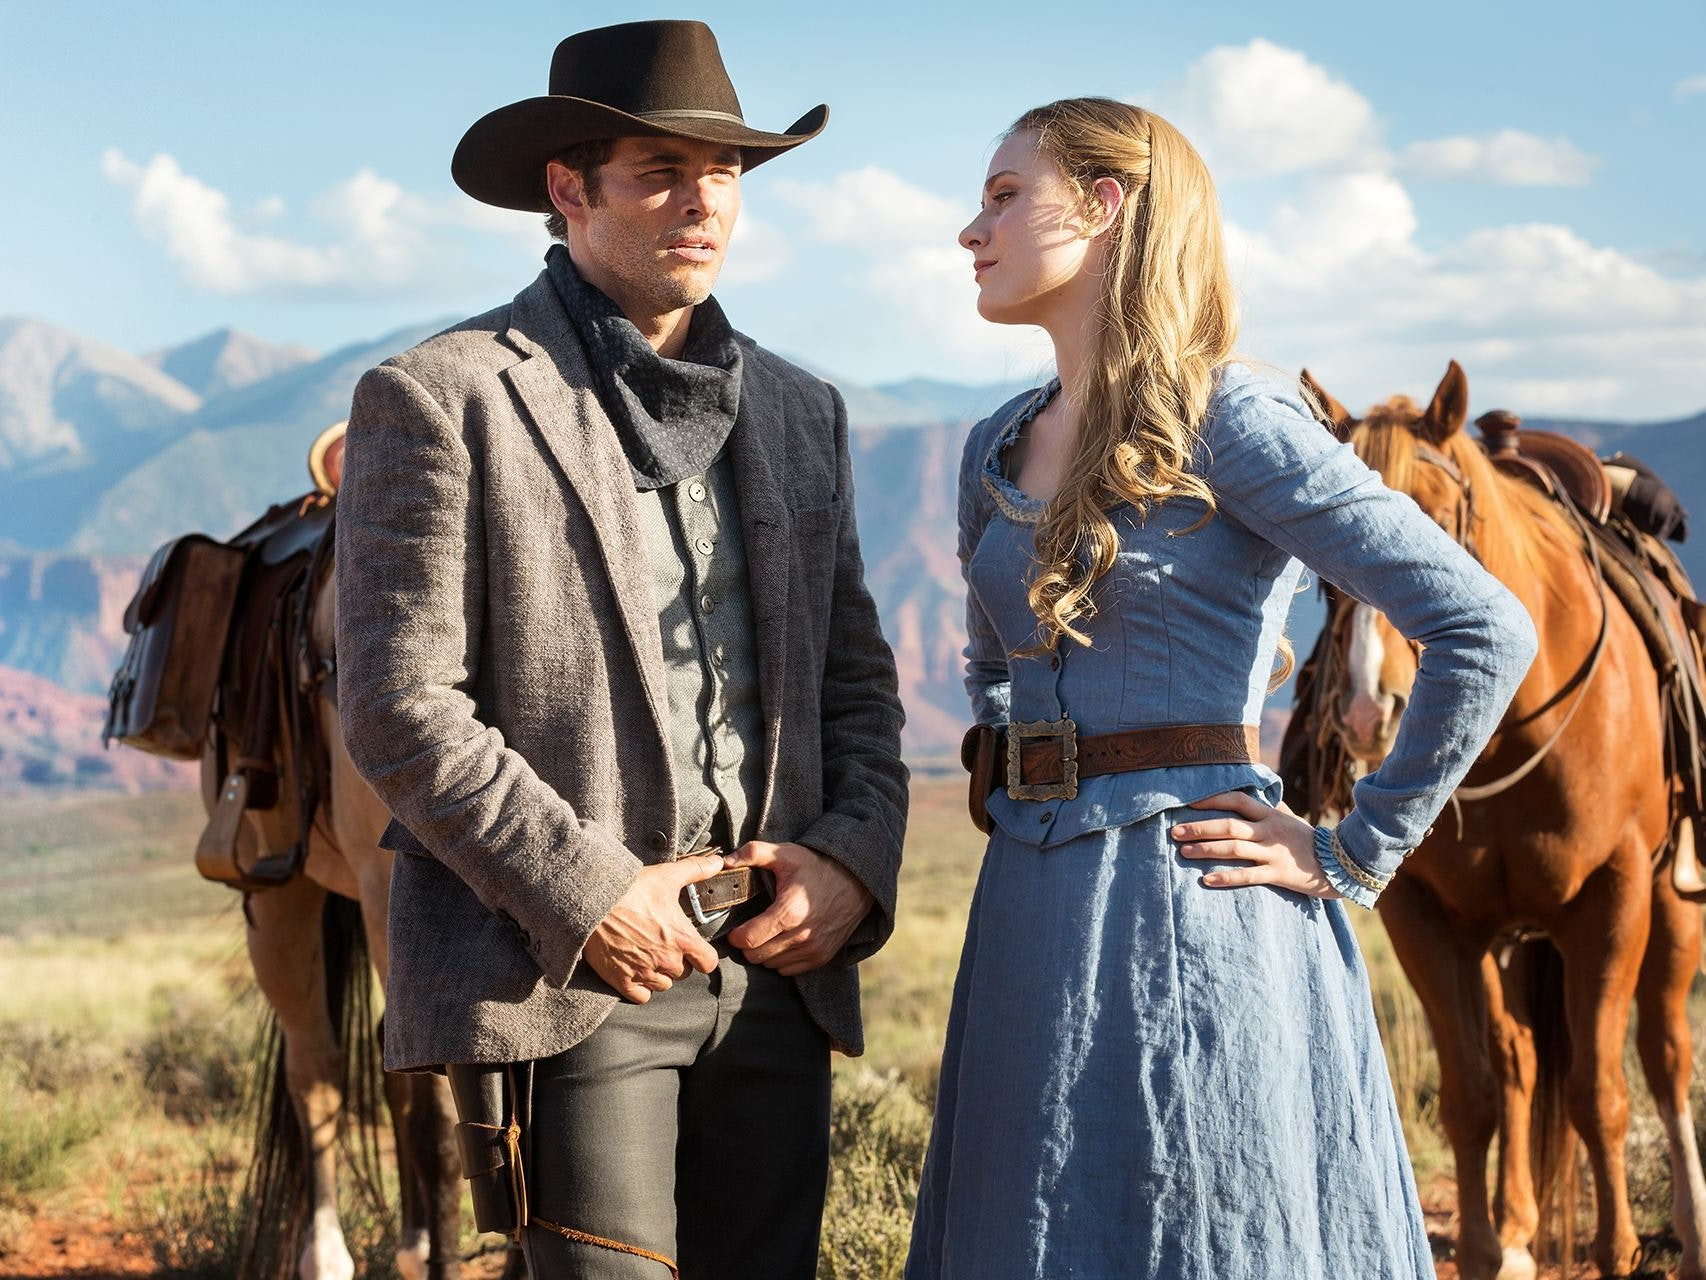 What To Expect From HBO's New Sci-Fi Western 'Westworld'